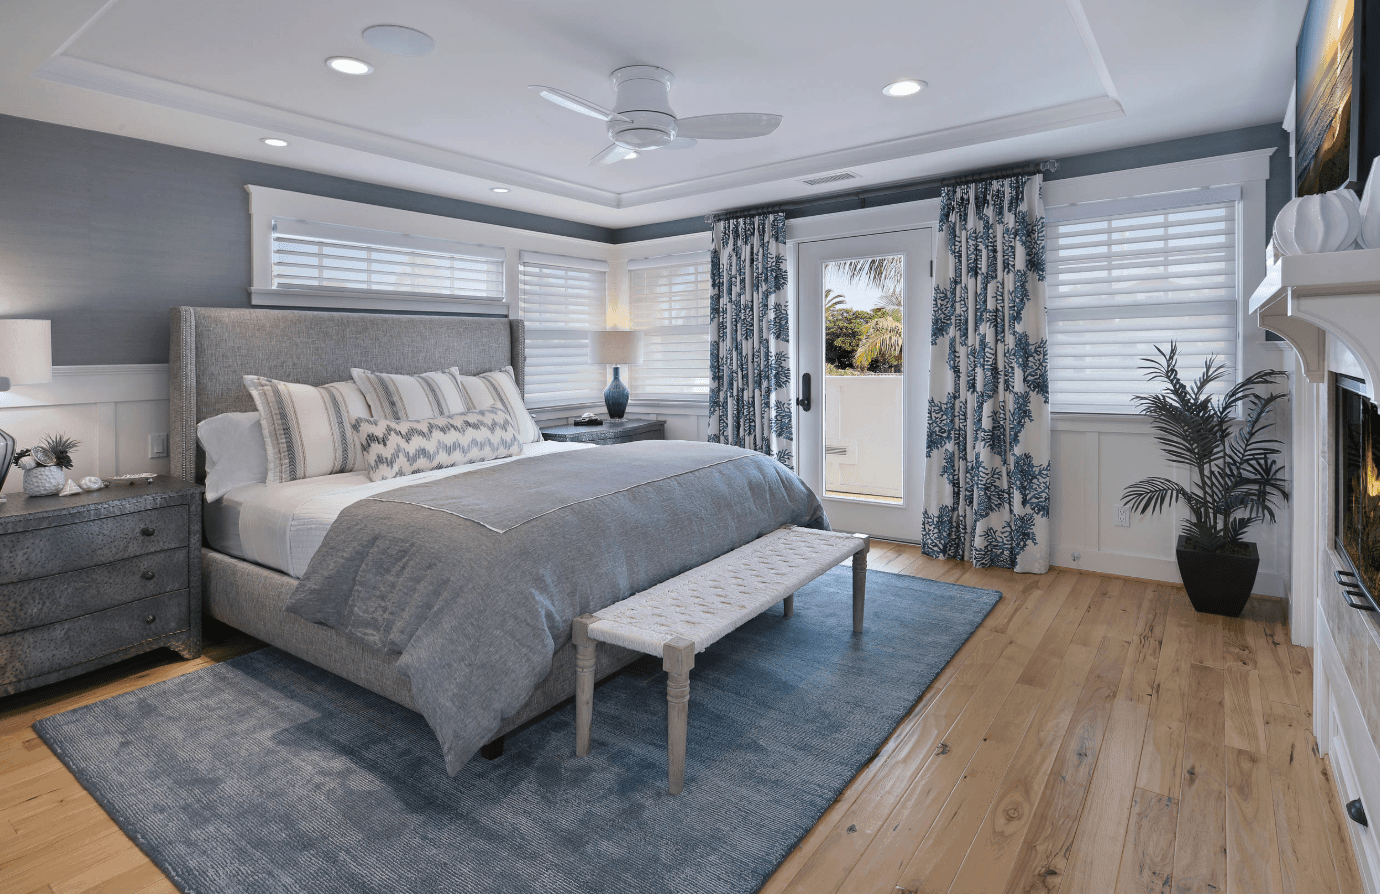 50 Beach Style Master Bedroom Ideas (Photos)